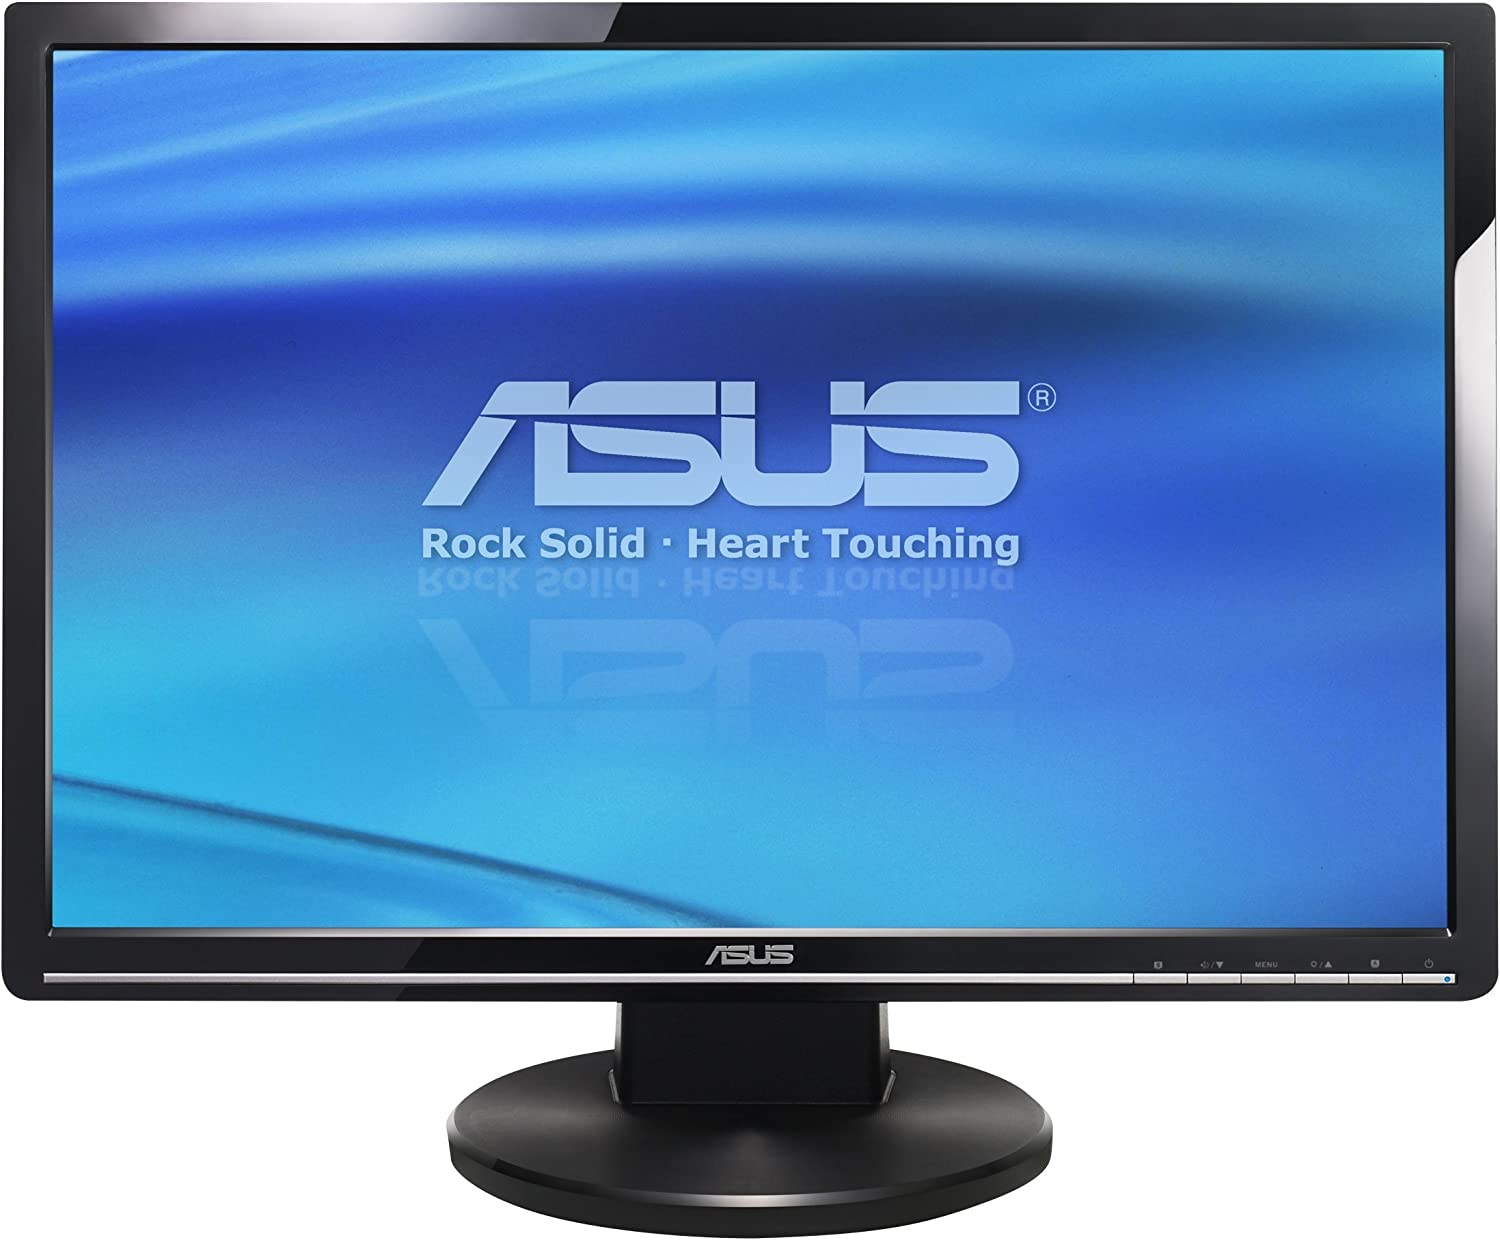 Asus VW9D 9 Zoll Wide Screen TFT Monitor black analog (9:9, 9ms)